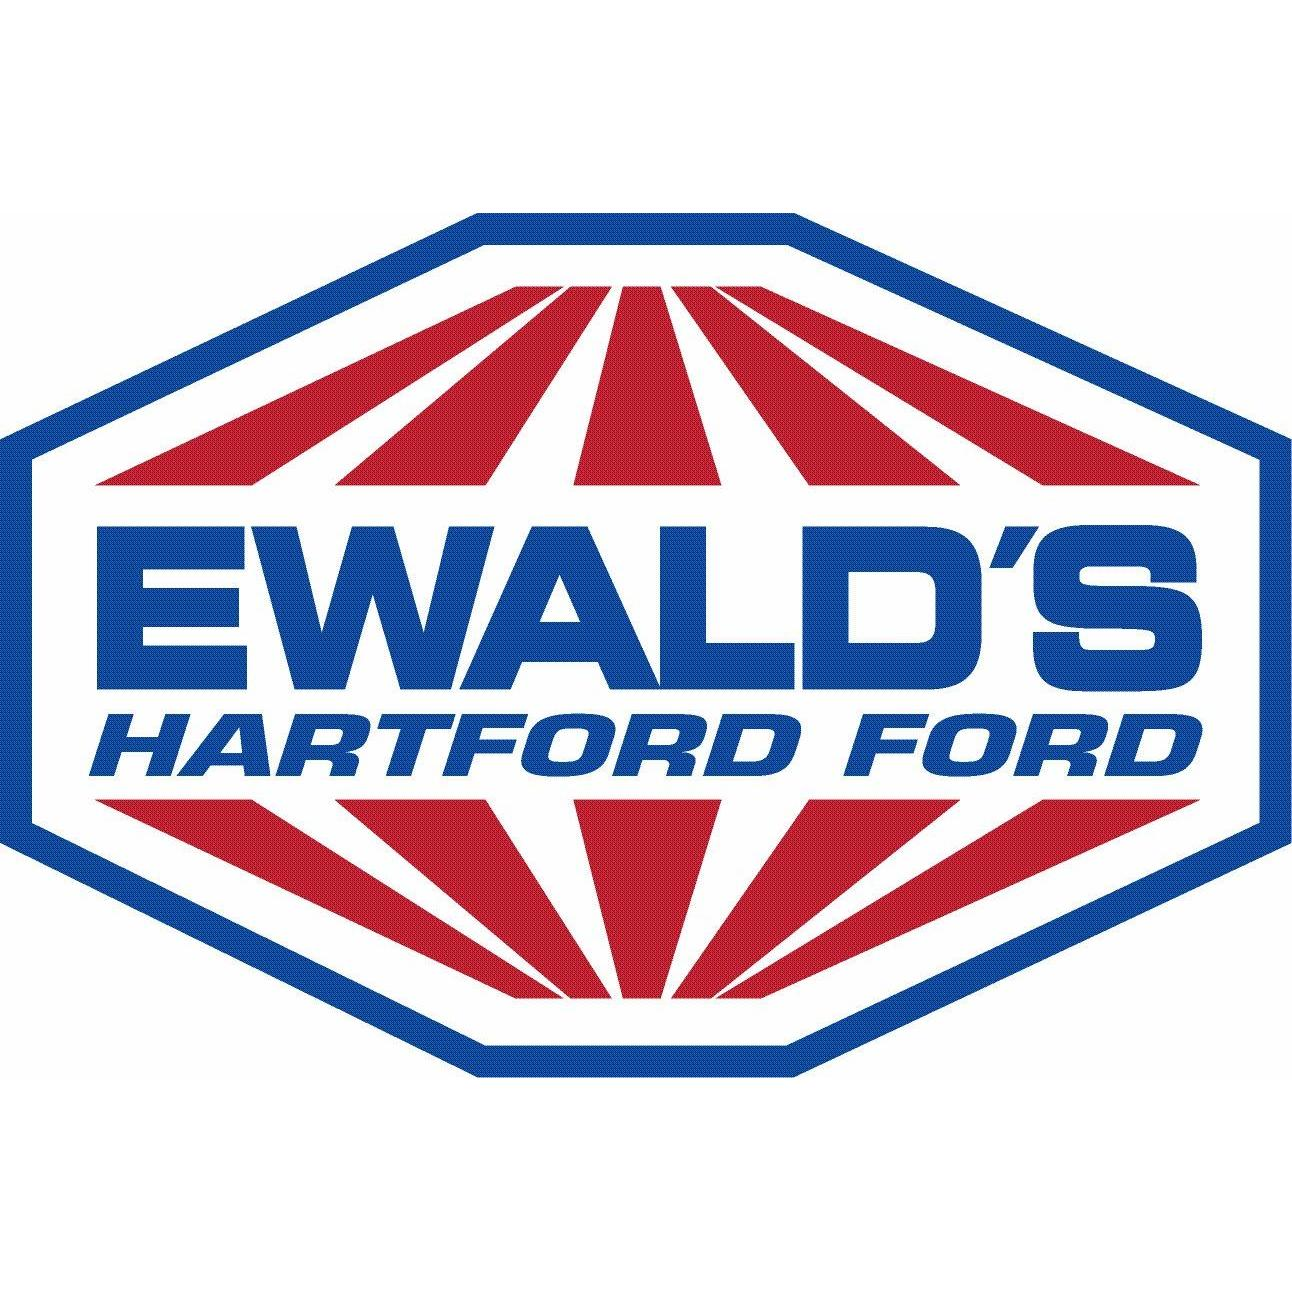 Ewalds Hartford Ford